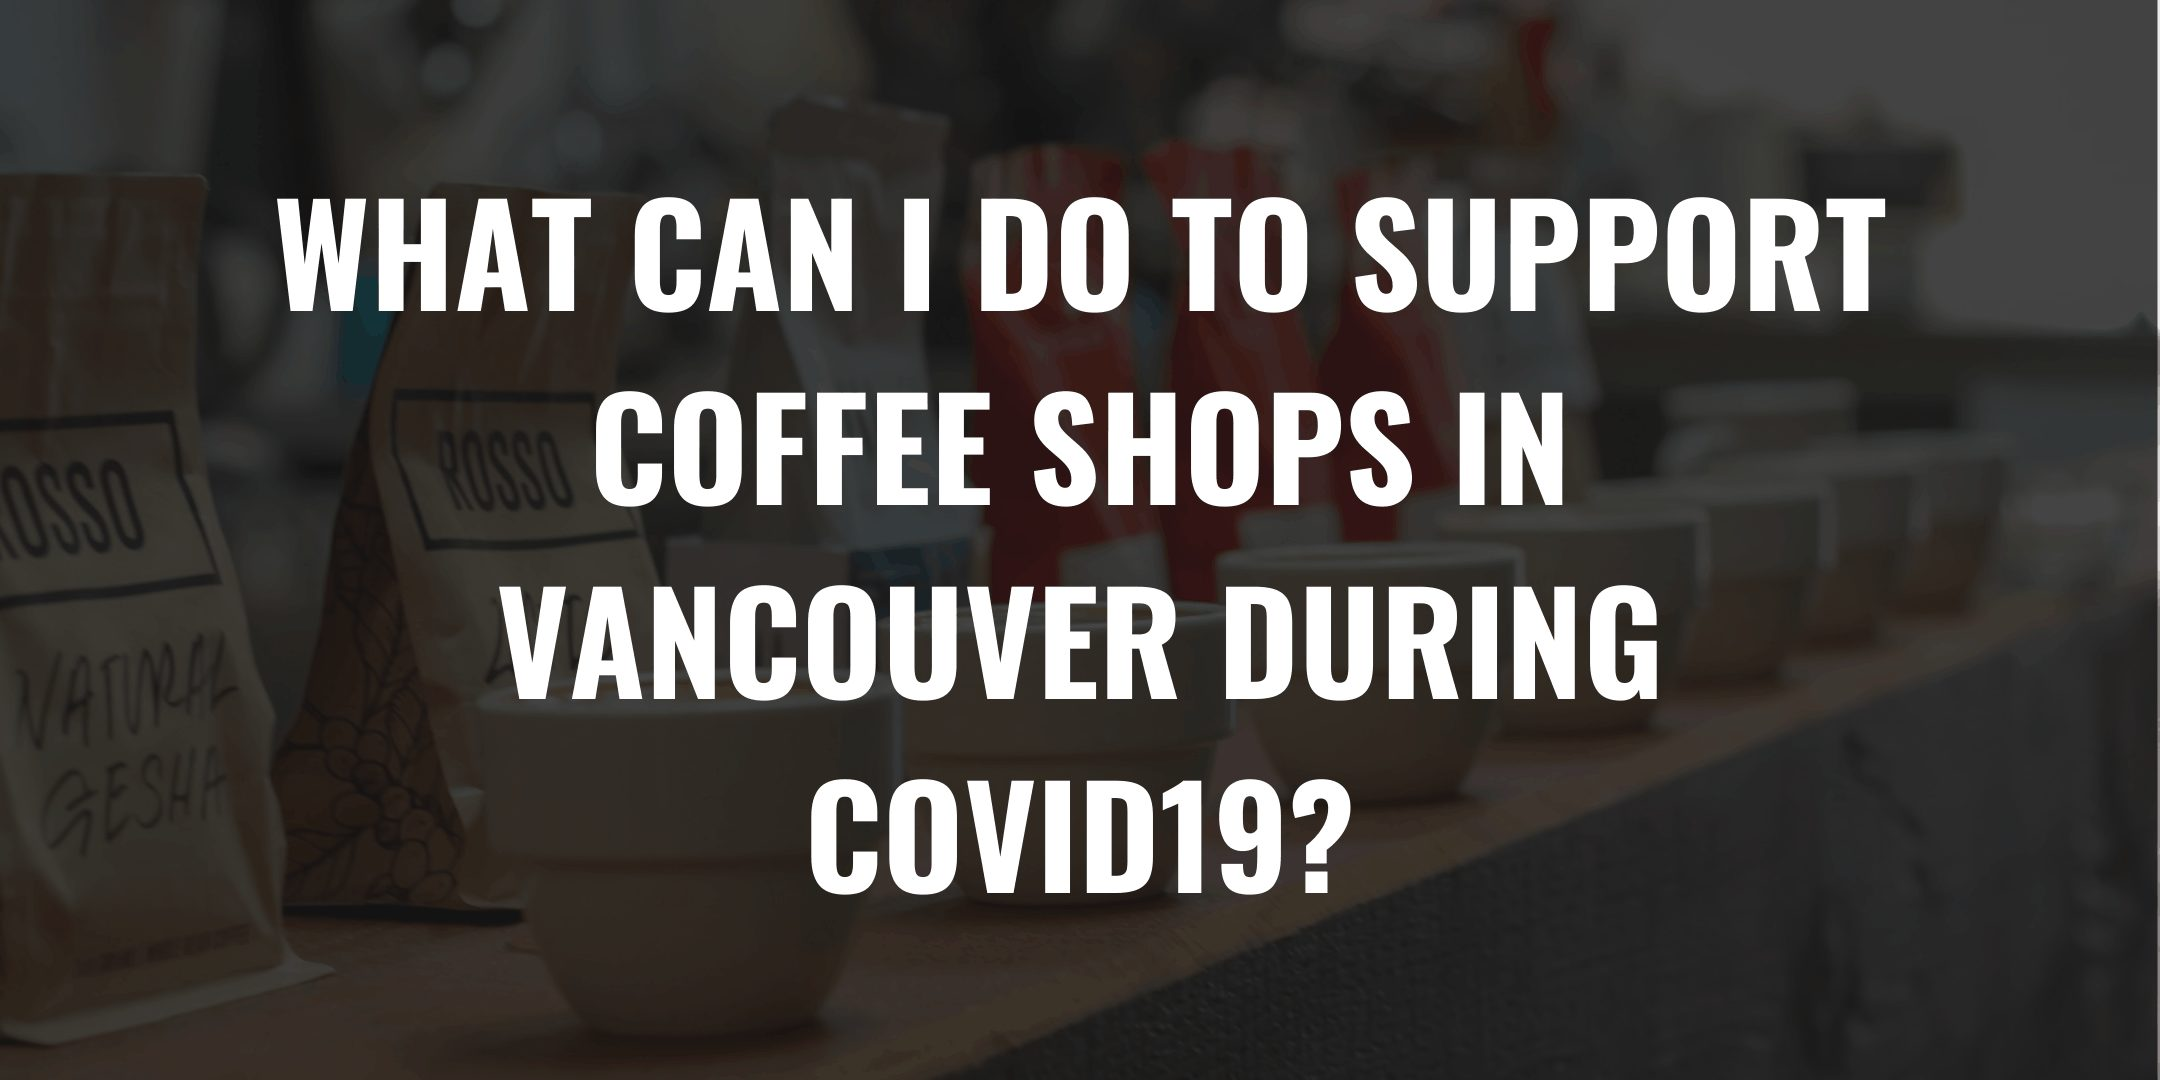 WHAT CAN I DO TO SUPPORT COFFEE SHOPS IN VANCOUVER DURING COVID19